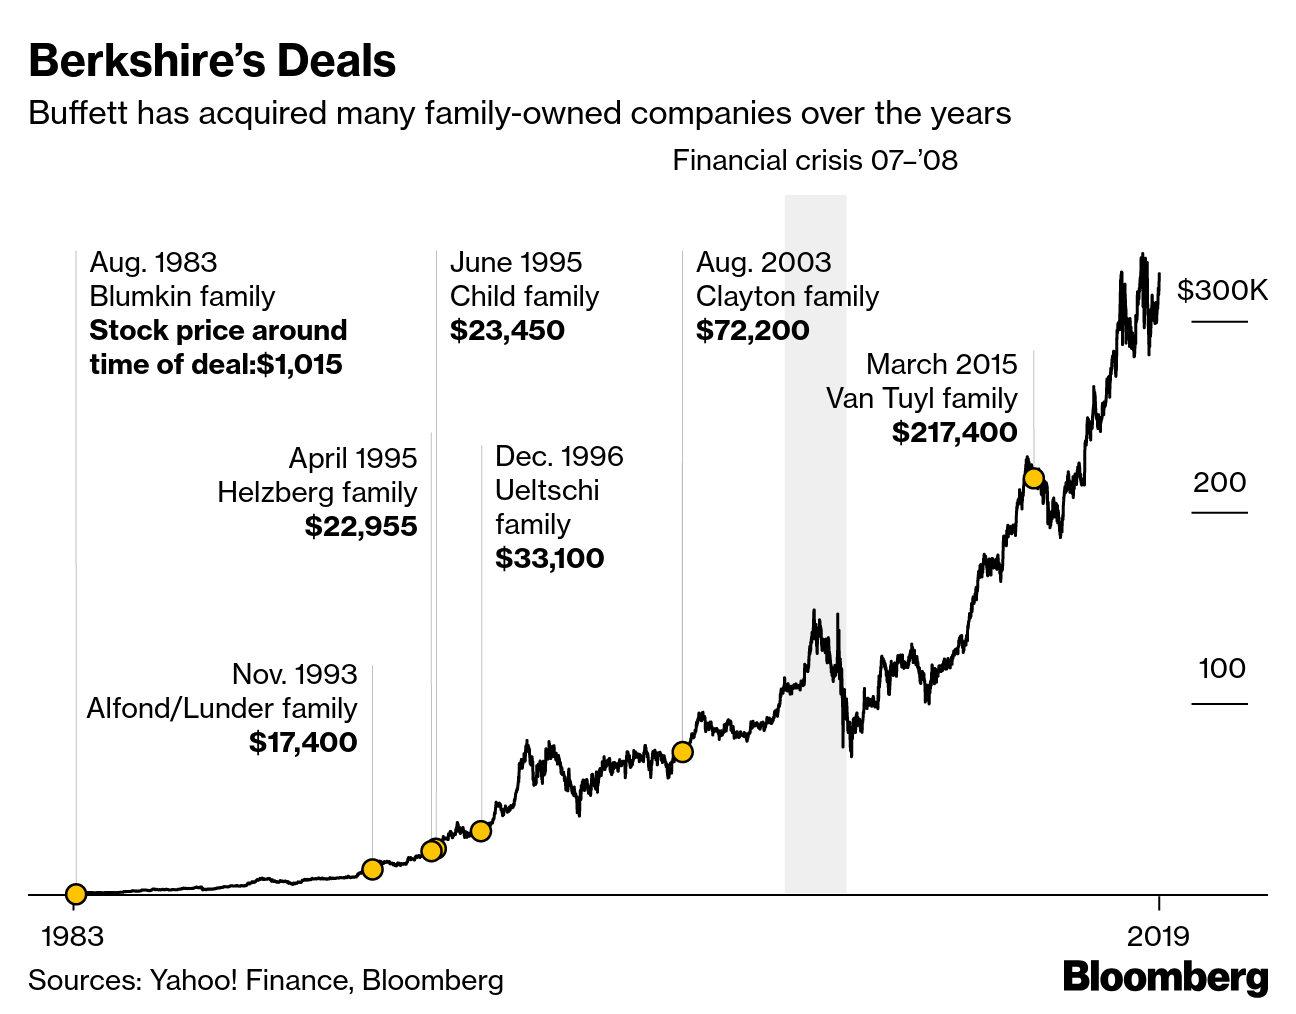 Buffett's Berkshire turns $21bn profit - but Kraft Heinz numbers missing